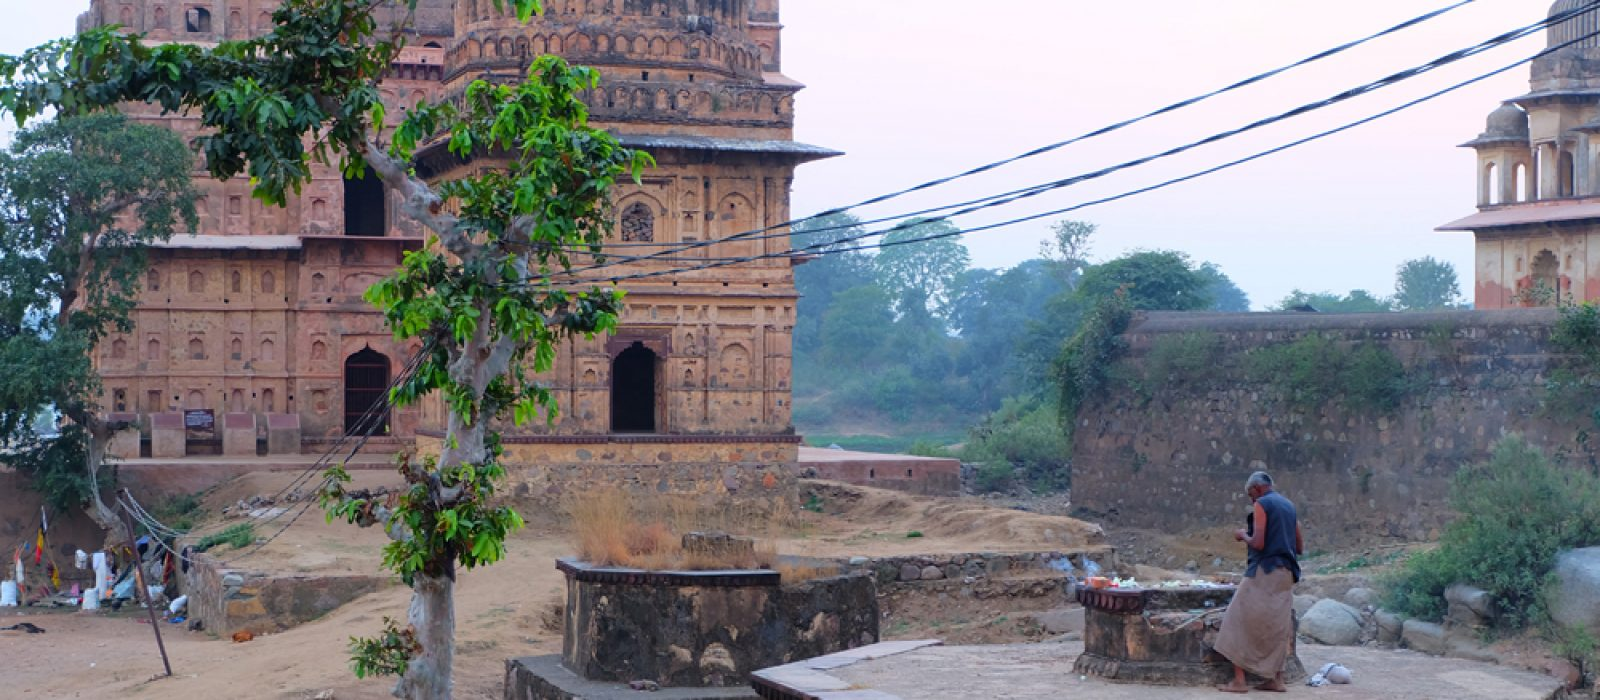 Highlights from Orchha, India